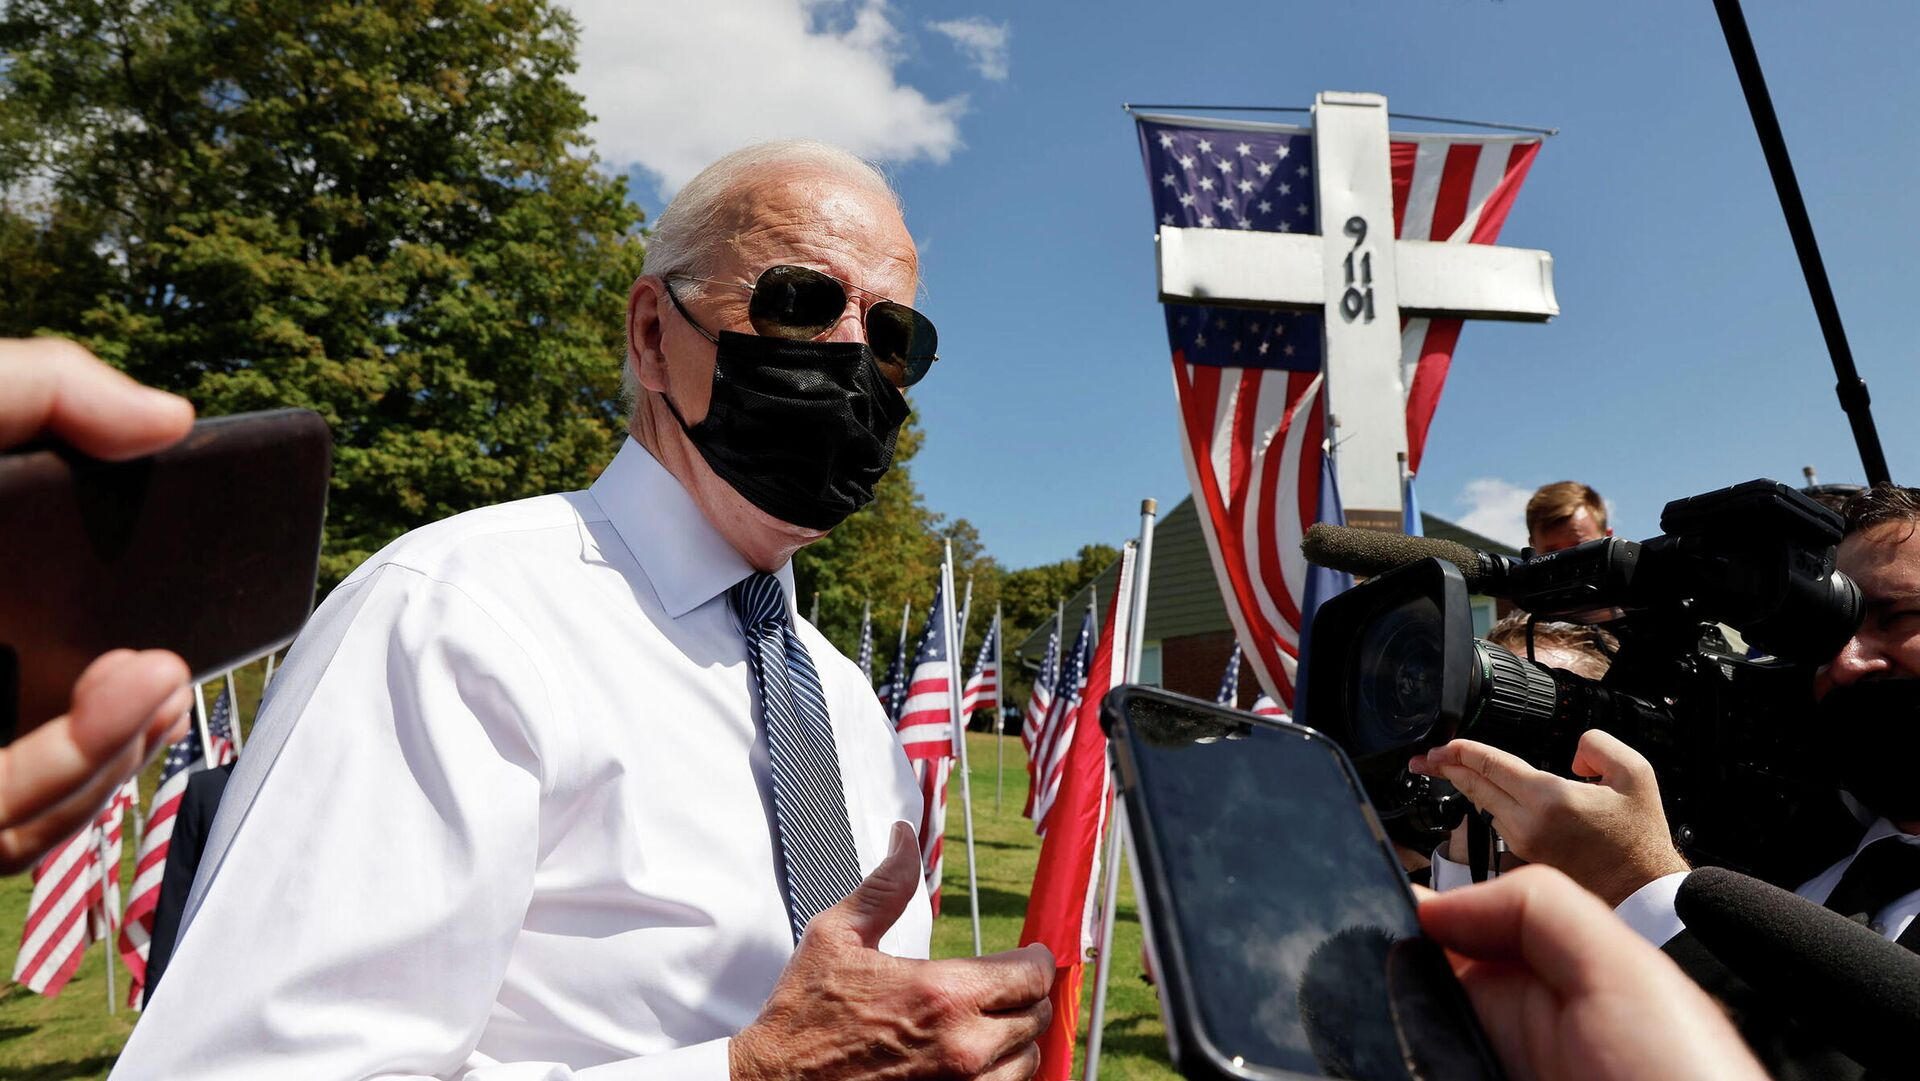 U.S. President Joe Biden talks with reporters outside the Shanksville volunteer fire station, as he and first lady Jill Biden stopped at the fire hall after visiting the nearby site where the hijacked United Airlines Flight 93 plane crashed on the 20th anniversary of the September 11, 2001 attacks, in Shanksville, Pennsylvania, U.S., September 11, 2021. - Sputnik International, 1920, 11.09.2021